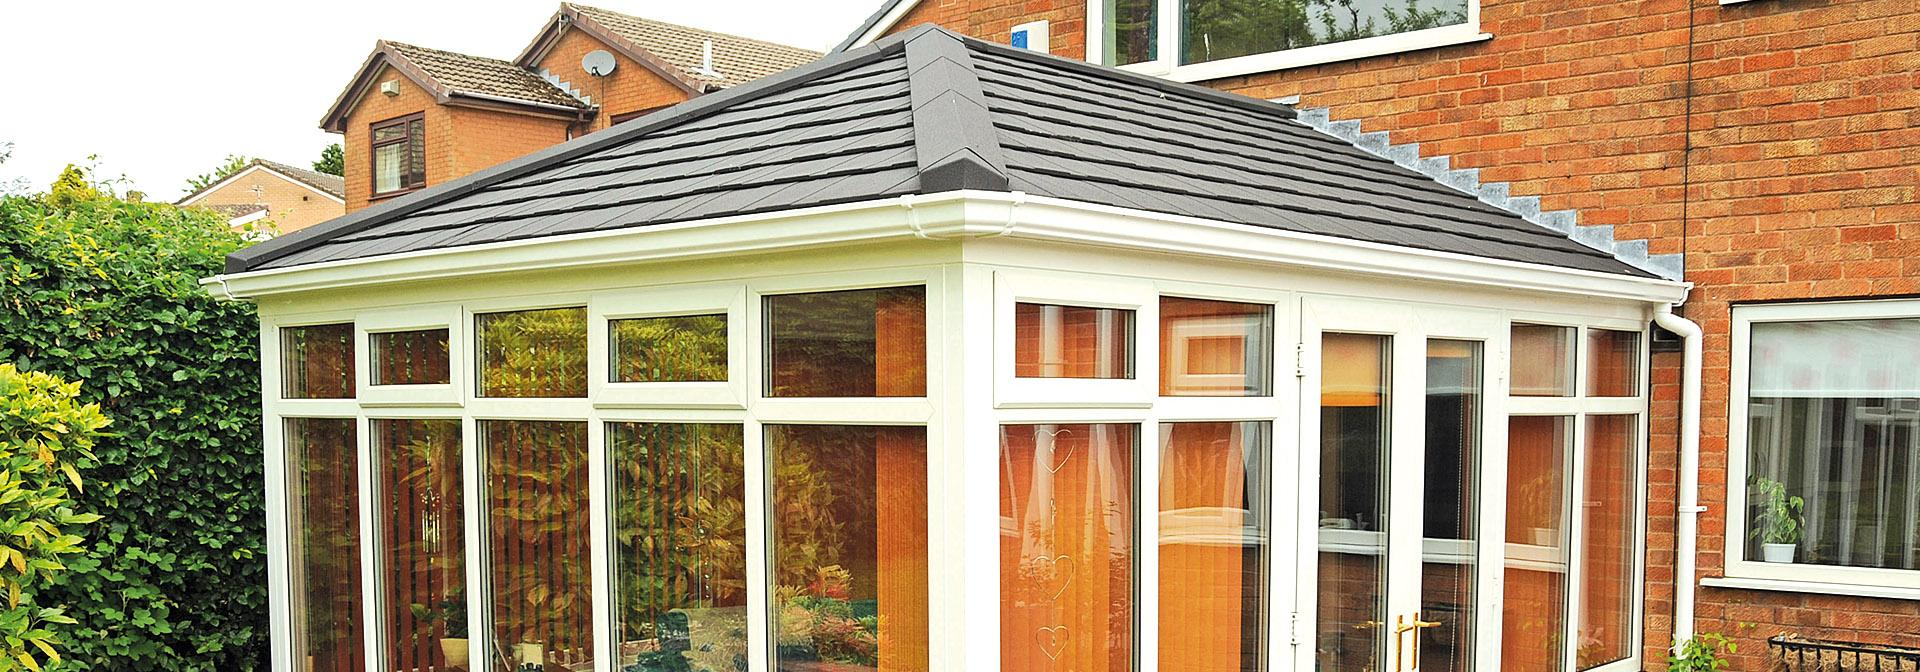 Refresh your conservatory with a new solid conservatory roof.